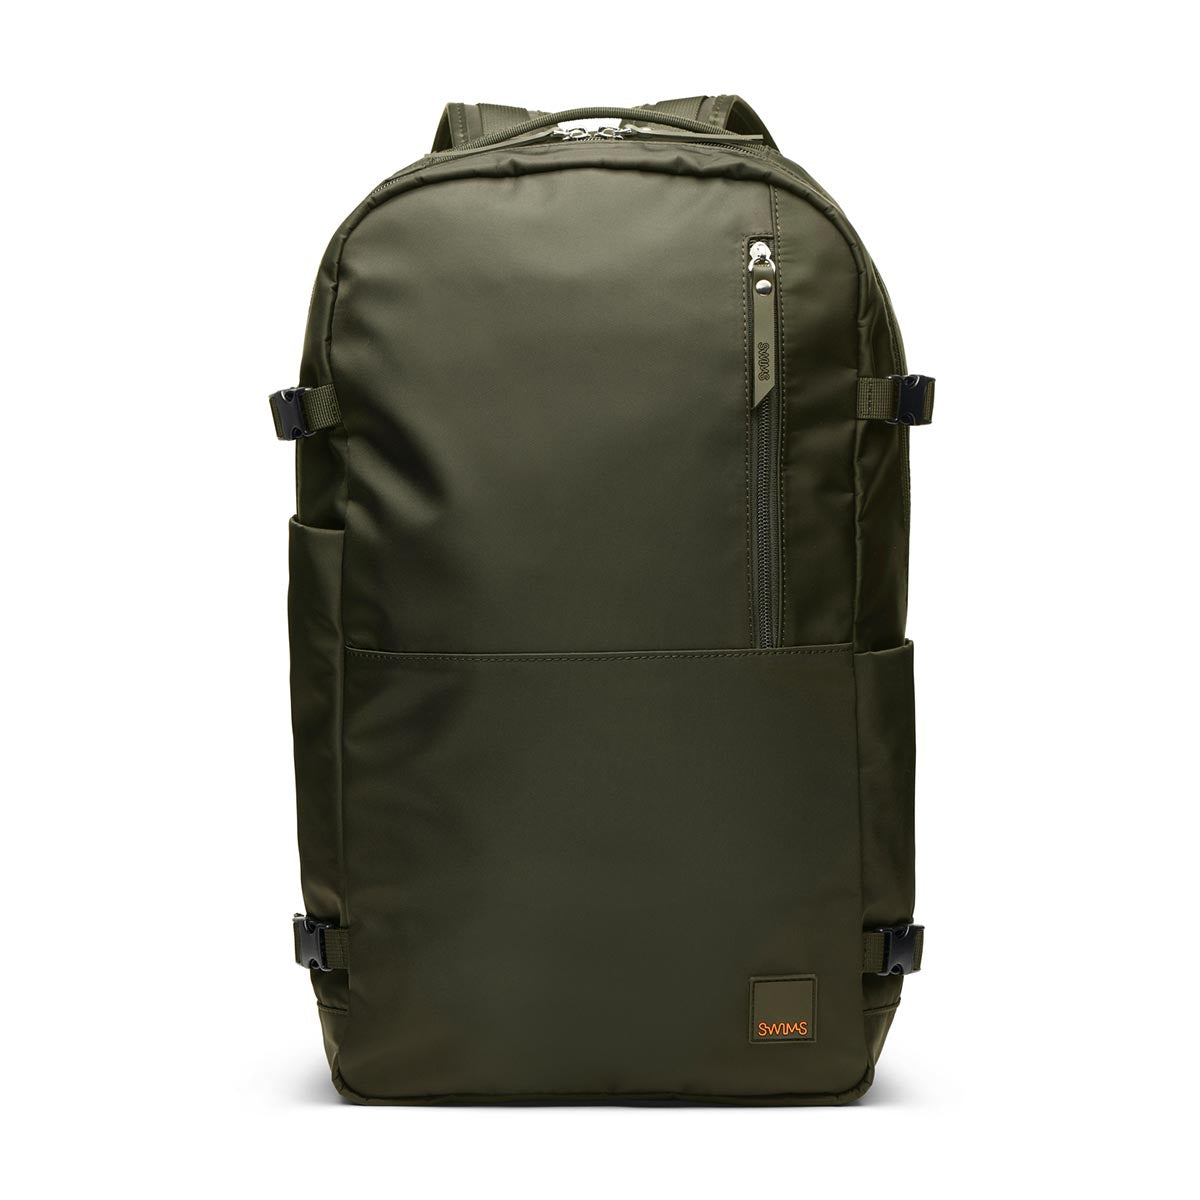 Motion Backpack - background::white,variant::Olive